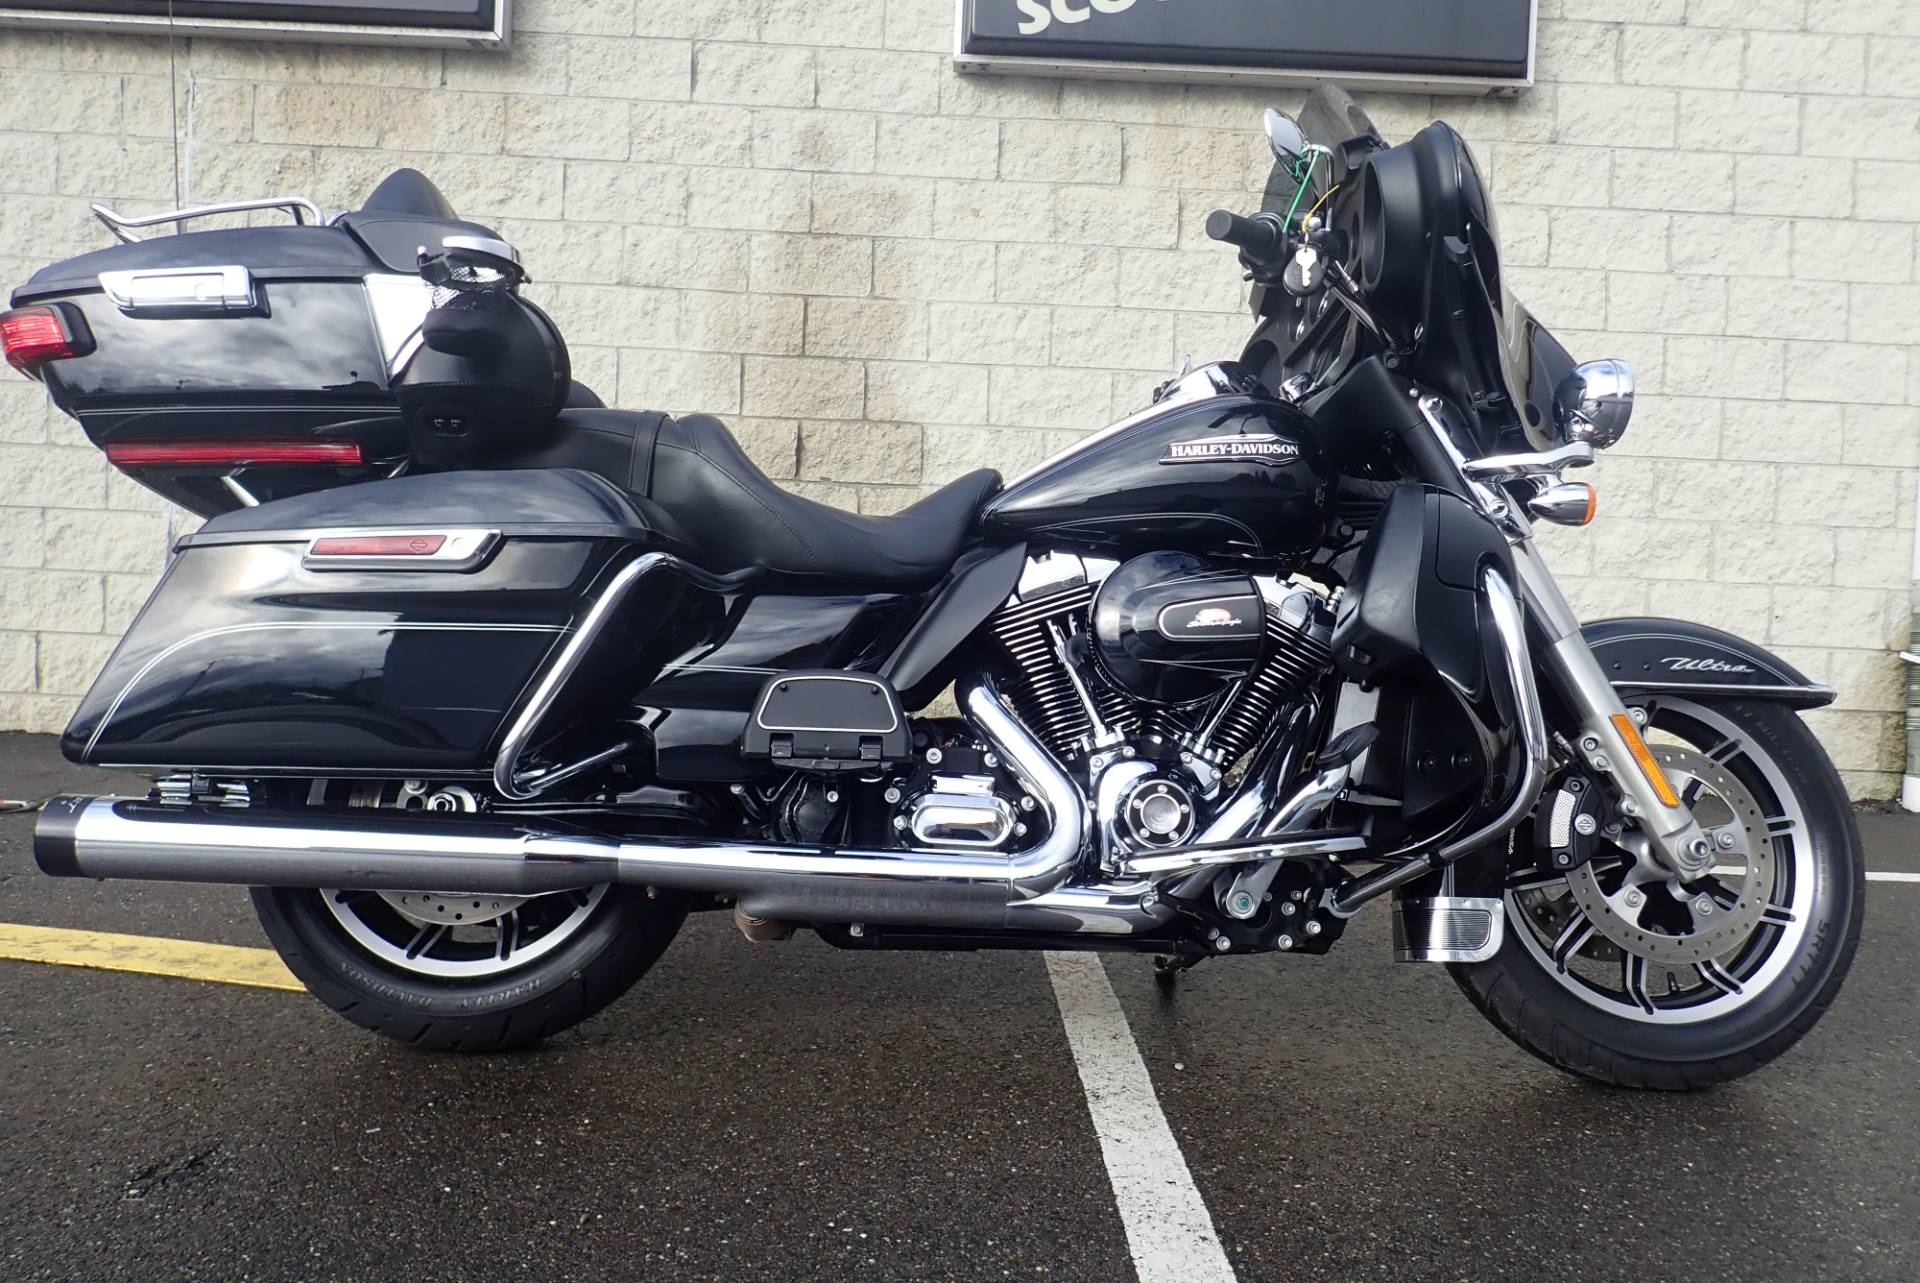 2015 Harley Davidson Electra Glide Ultra Classic Motorcycles Tour Pack In Massillon Ohio